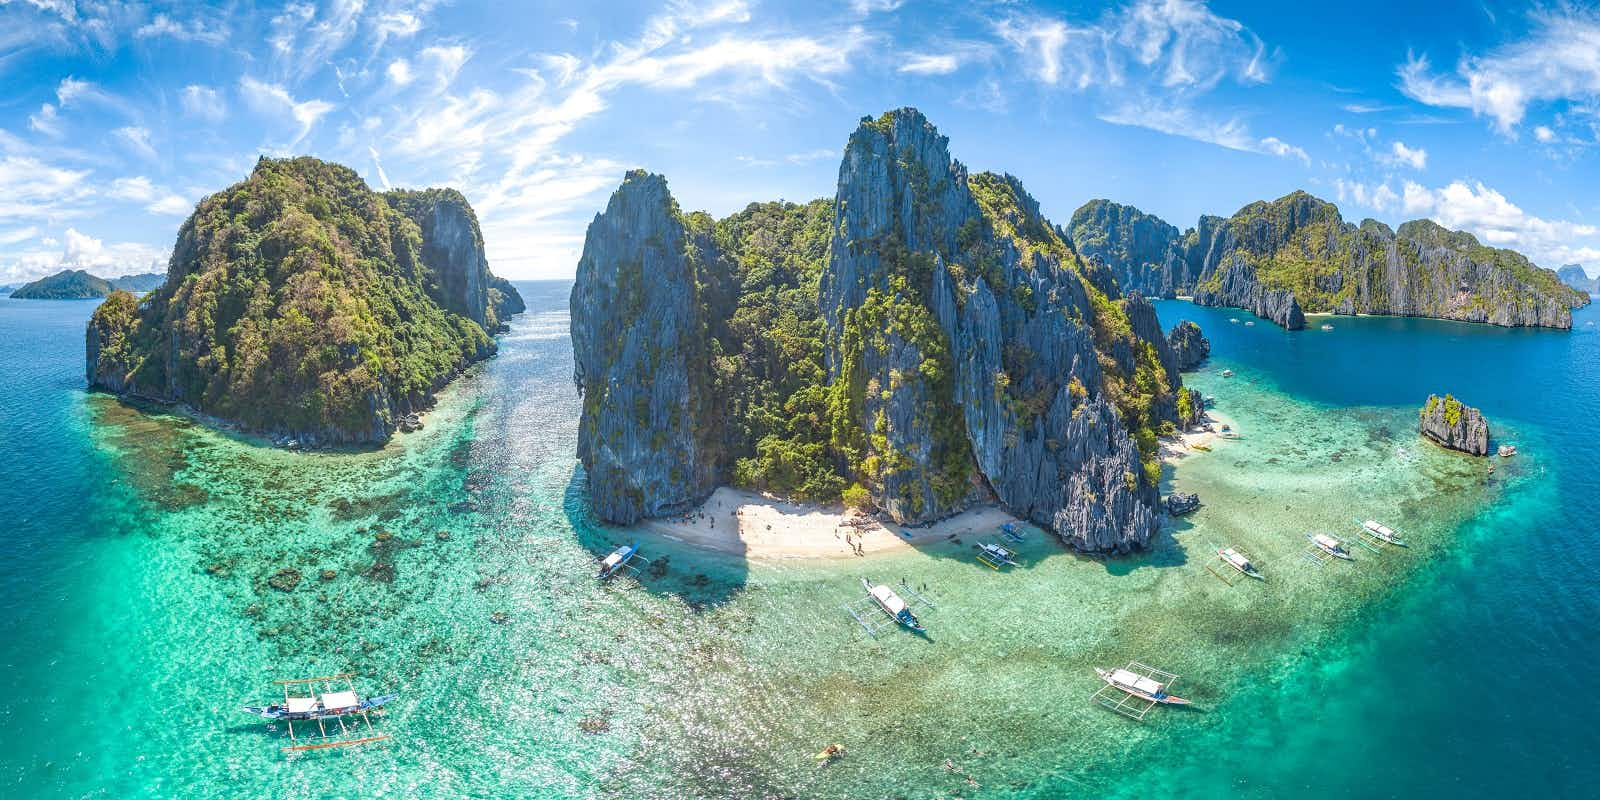 The Philippines for beginners: 7 first-timer fails to avoid